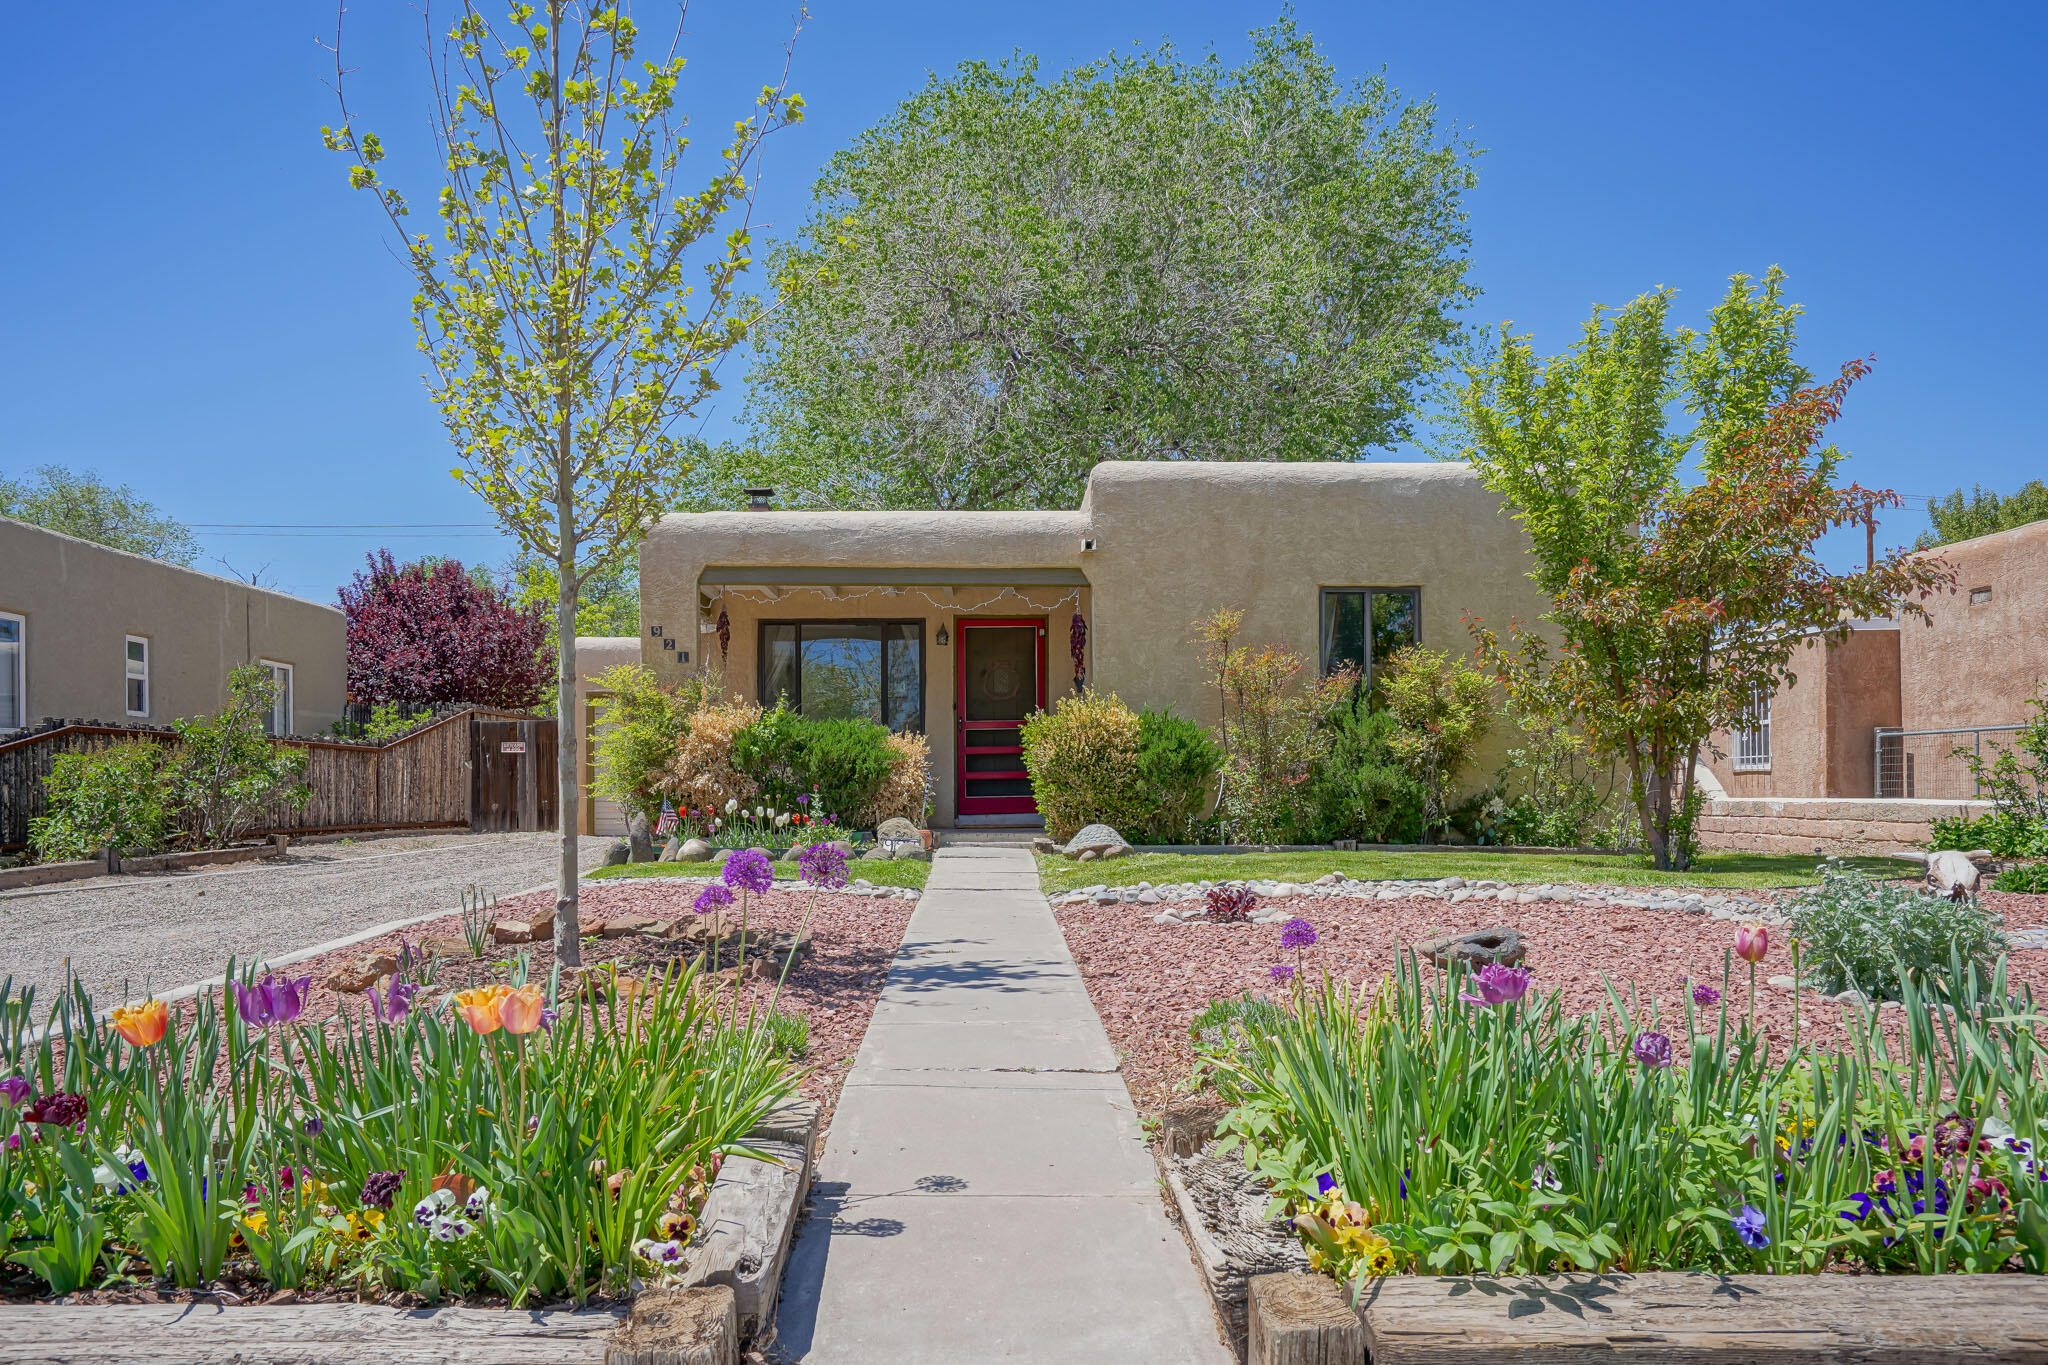 This adorable Ridgecrest property is conveniently located close to shopping, schools, airport, university, dining and freeway access. Walk or bike down to Nob Hill, or picnic in one of the many parks within a half mile radius. Enter and enjoy the natural hardwood floors, coved ceilings, Kiva fireplace and updated kitchen! New paint throughout and new carpet in the master bedroom which offers a large his/her walk-in closet!! Attached 1-car garage is complete with a workbench and large pantry. Step outside to the backyard, completely landscaped with lawn, raised garden beds, a greenhouse, and storage shed! Enjoy peaches, cherries, apples, and blackberries all from your private, fenced oasis. The patio are entertaining spaces perfect for any gathering! **No showings after Thursday Evening**